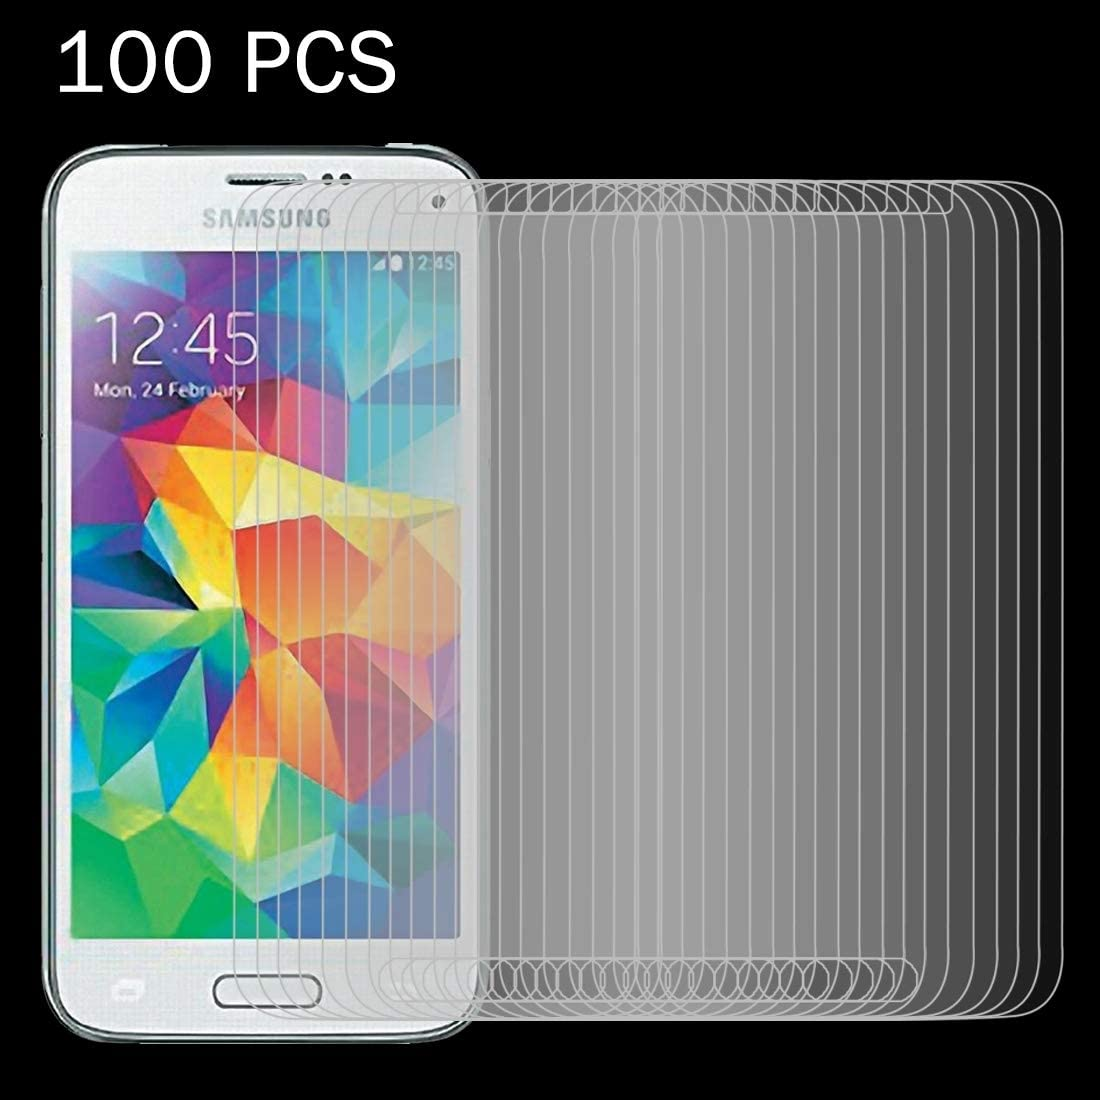 JIN PhoneGlassFilm 100 PCS for Galaxy S5 Mini G800 0.26mm 9H Surface Hardness 2.5D Explosion-Proof Tempered Glass Screen Film